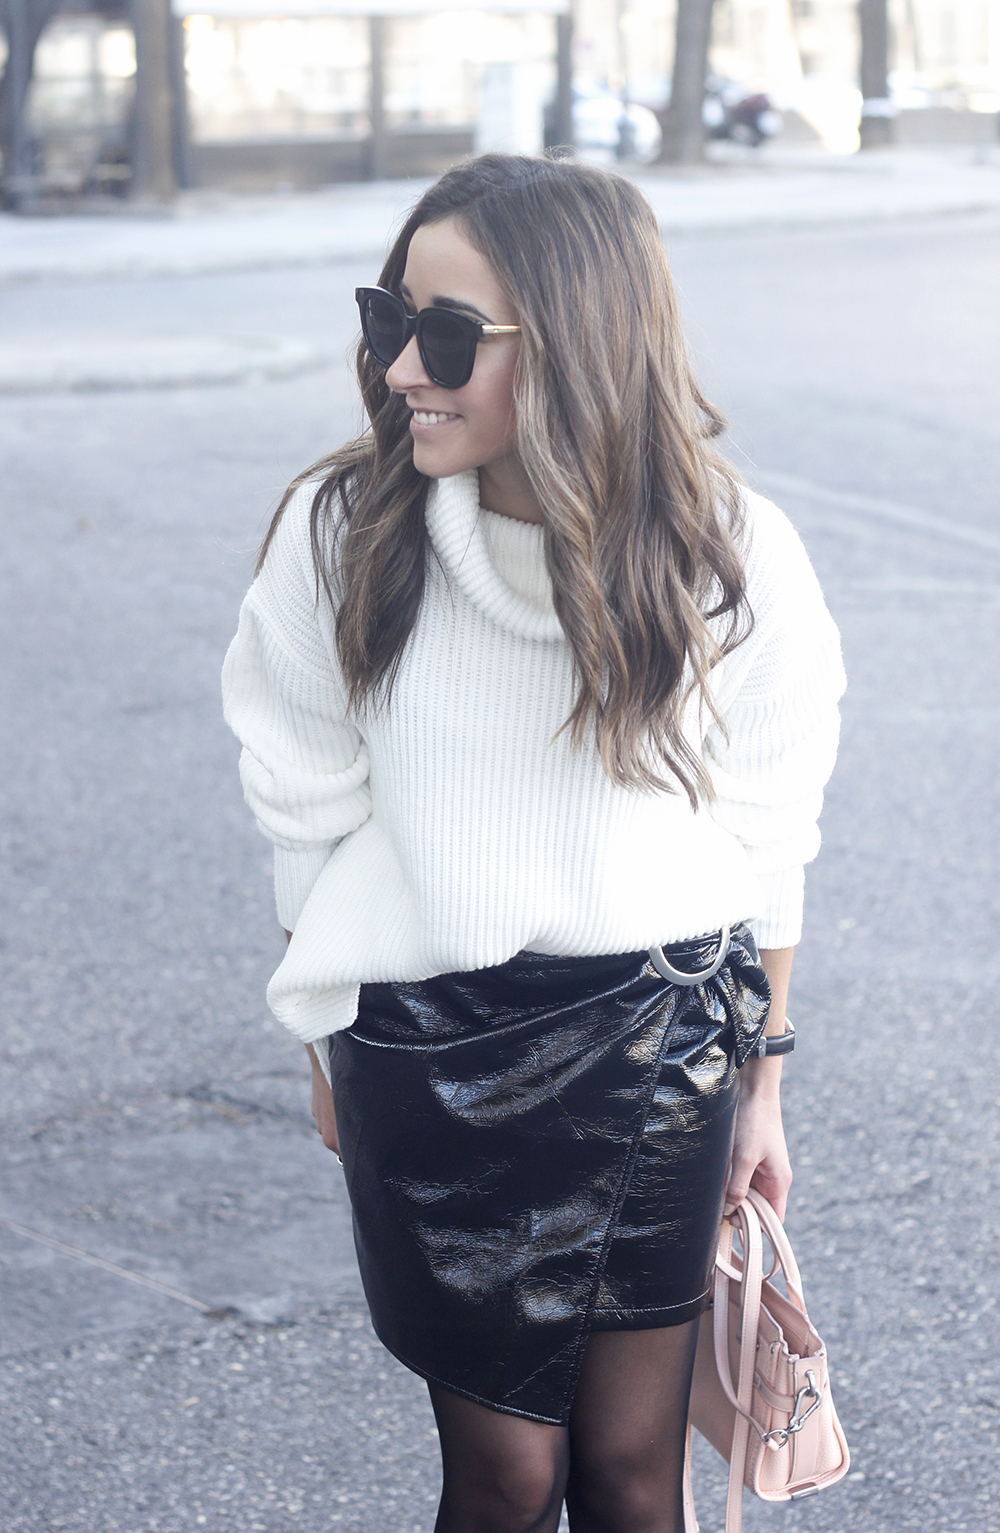 Black Patent leather skirt white sweater coach bag heels outfit style fashion winter10